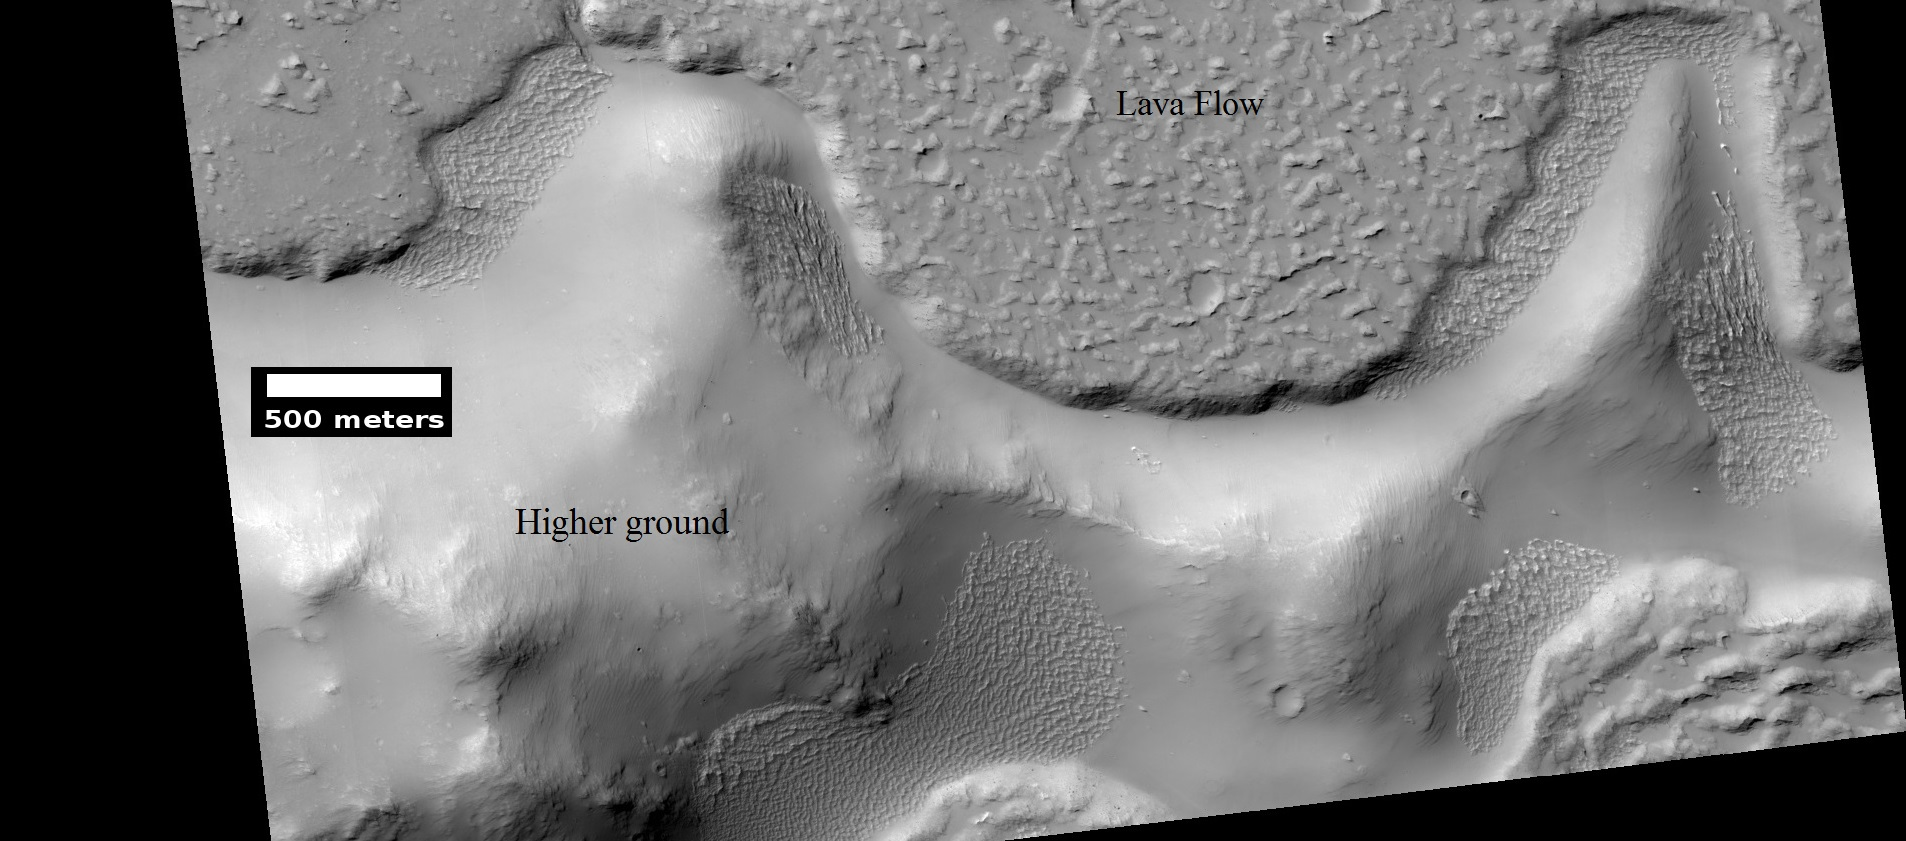 Lava flow. Lava flow stopped when it encountered the higher ground of a mound. Picture was taken with HiRISE under HiWish program.